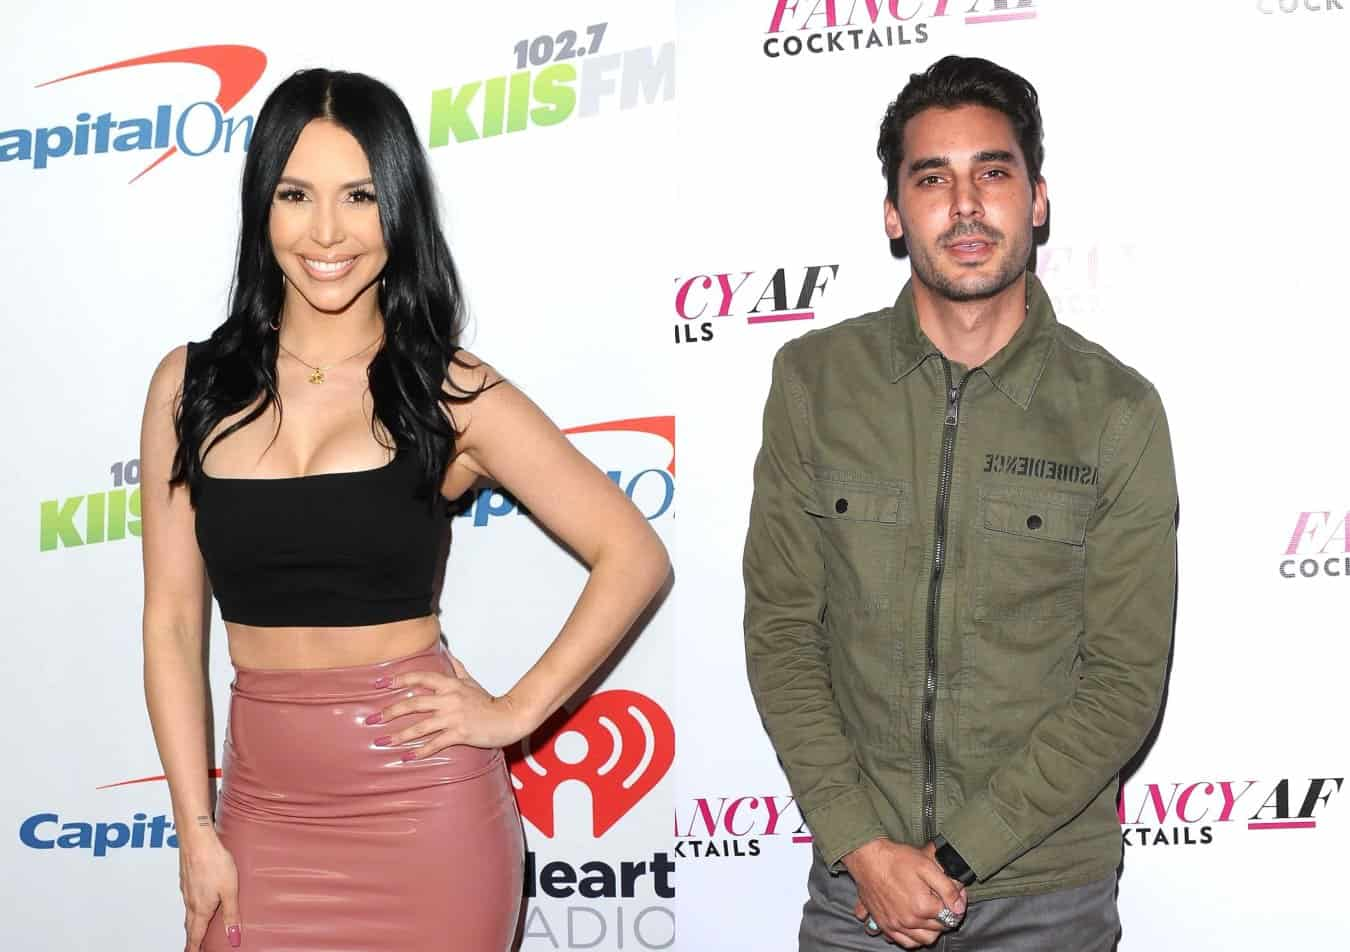 Vanderpump Rules' Scheana Shay Shades Max Boyens on Twitter, Plus Max Apologizes After His Past Racist Tweets Are Exposed